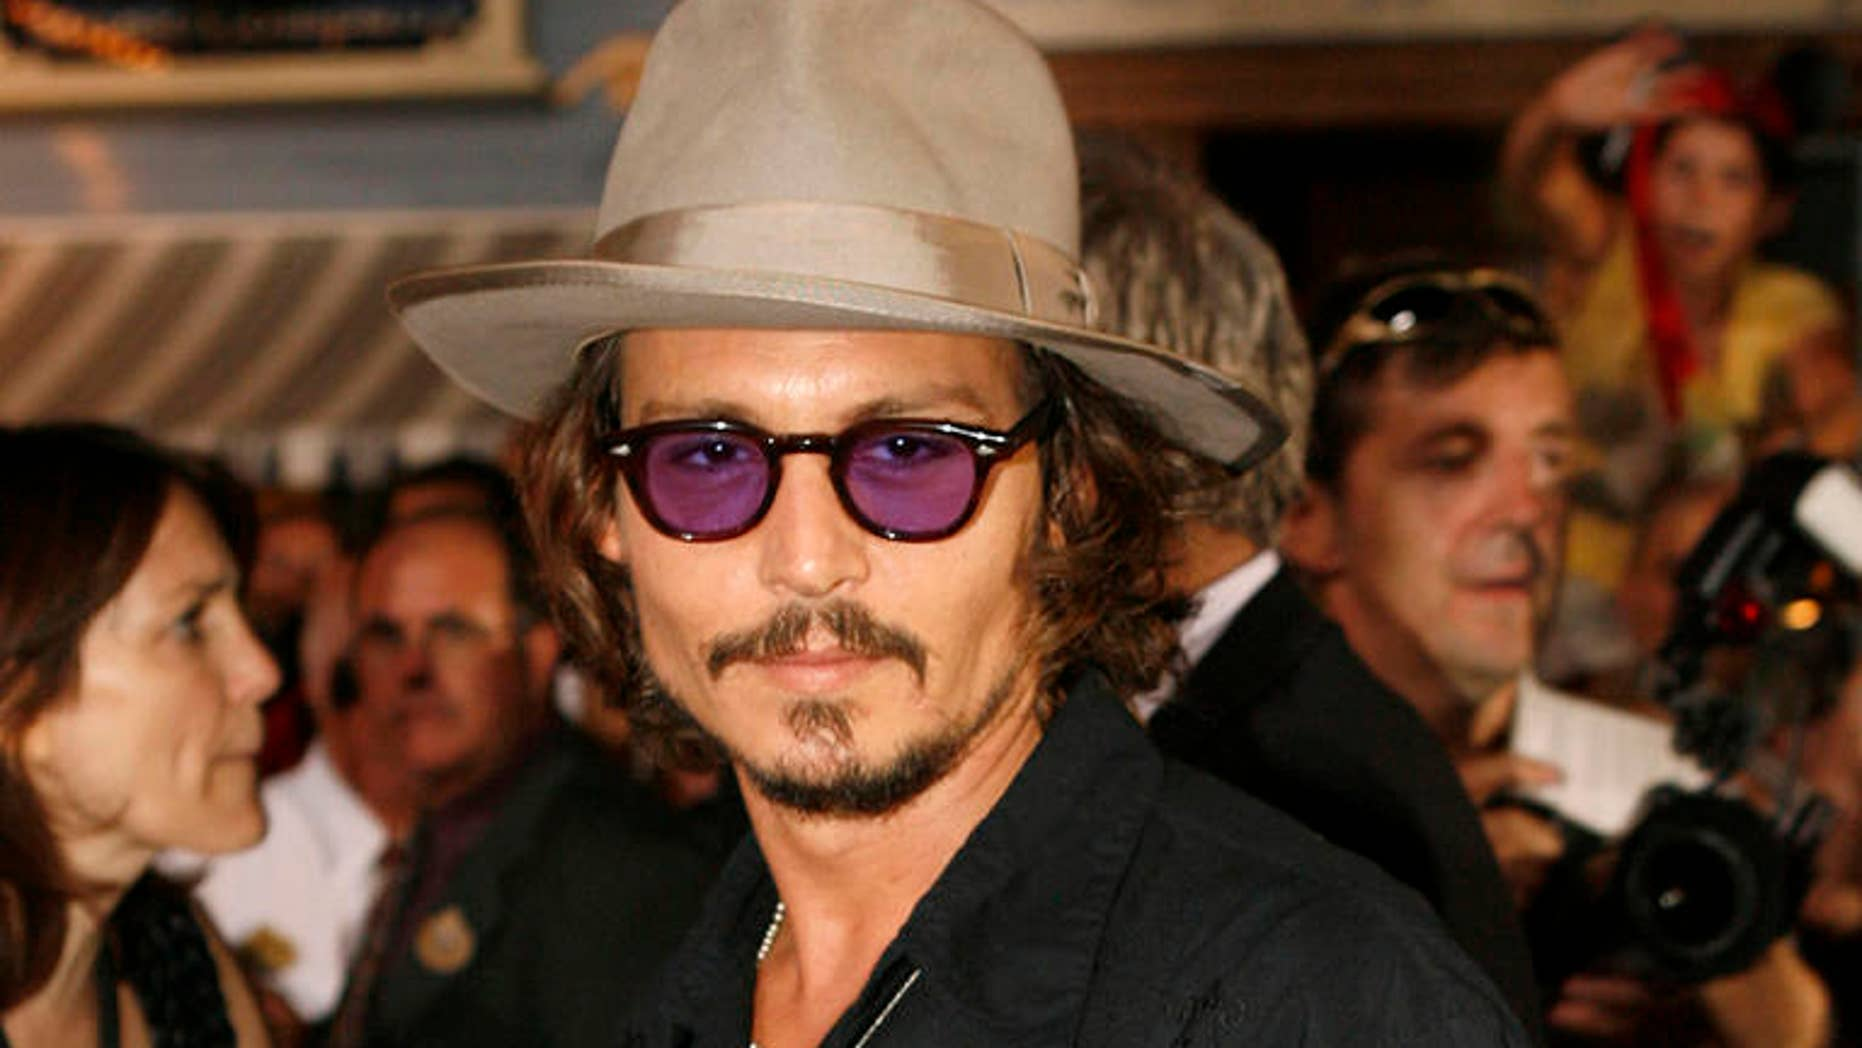 """Actor Johnny Depp poses for photographers at the film premiere of  """"Pirates of the Caribbean: Dead Man's Chest,"""" at the Disneyland theme park in Anaheim, Calif., on Saturday, June 24, 2006. (AP Photo/Matt Sayles)"""